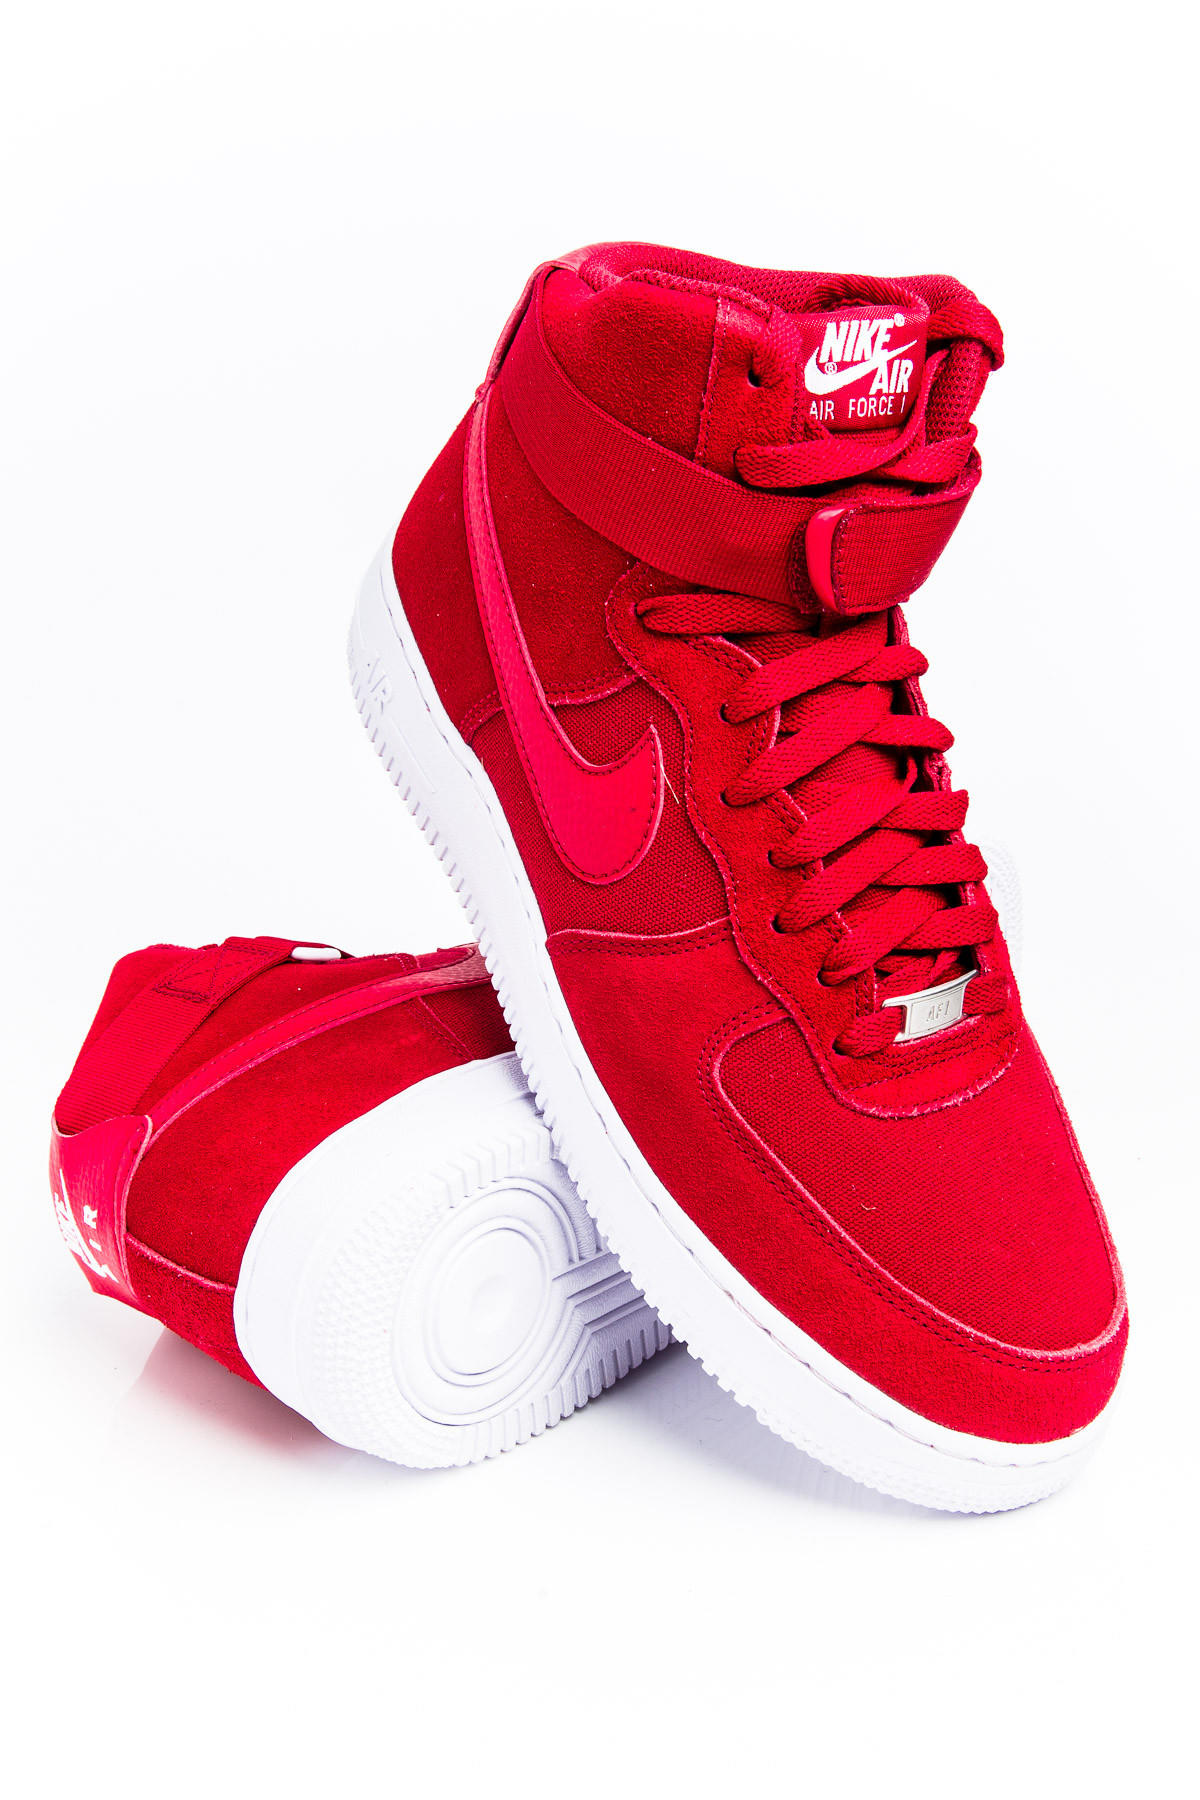 Nike Air Force 1 High 07 Sneaker from Probus  9cb78317e3